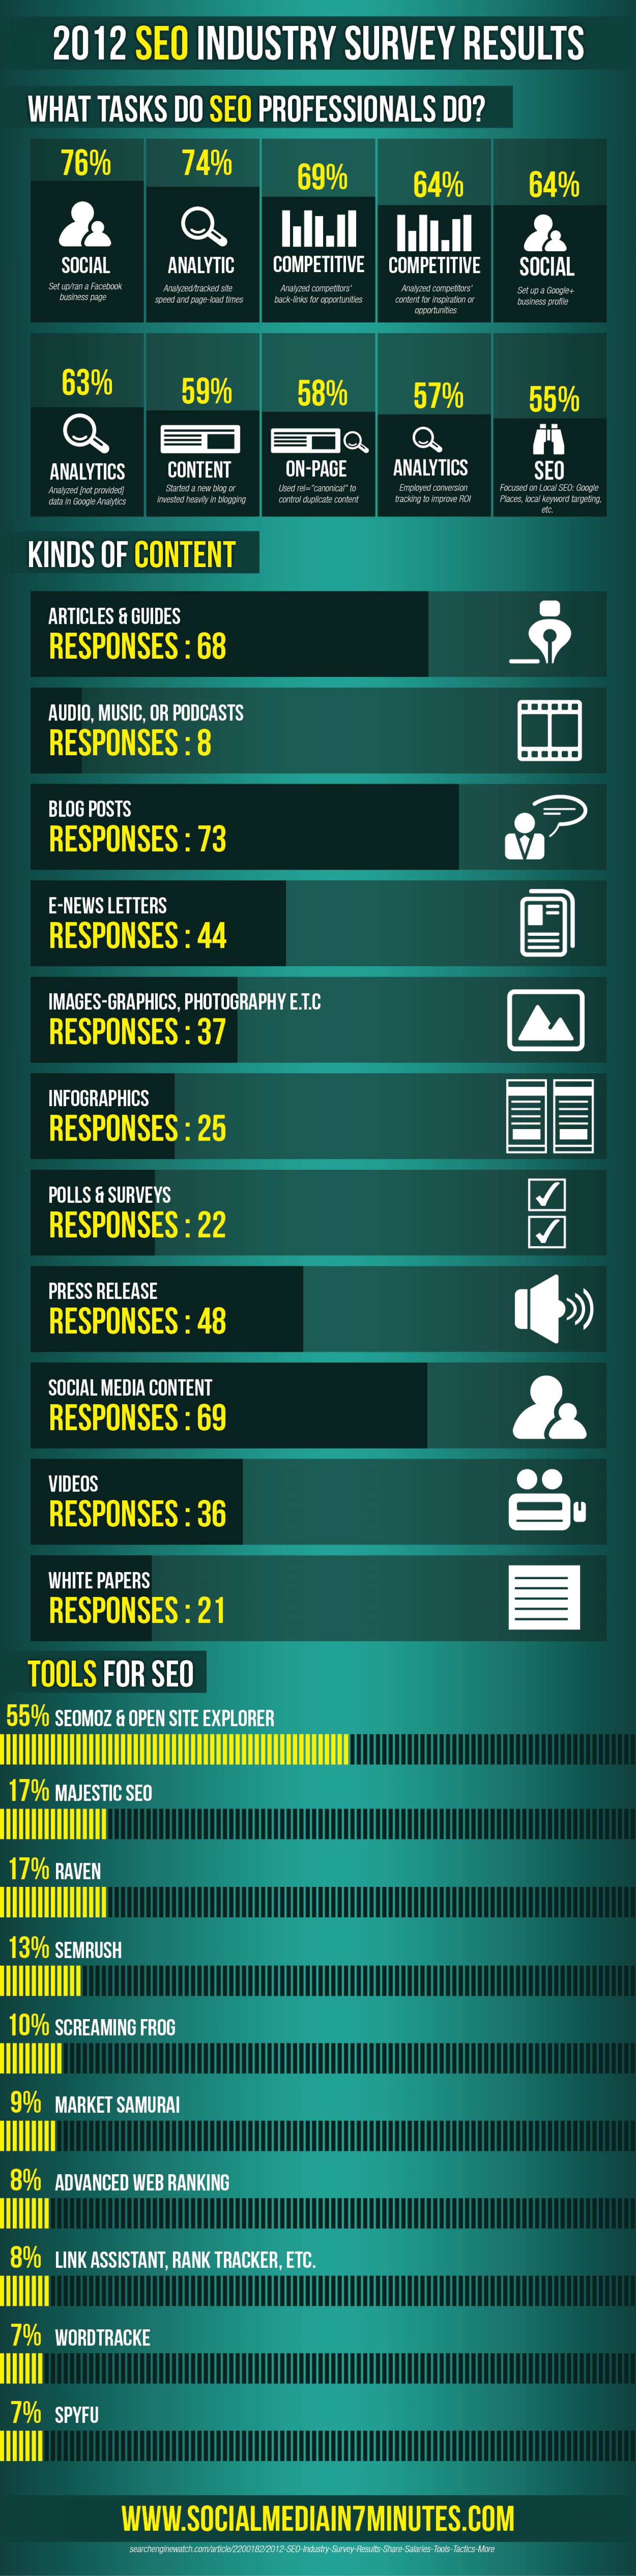 2012 SEO Industry Survey Results Infographic